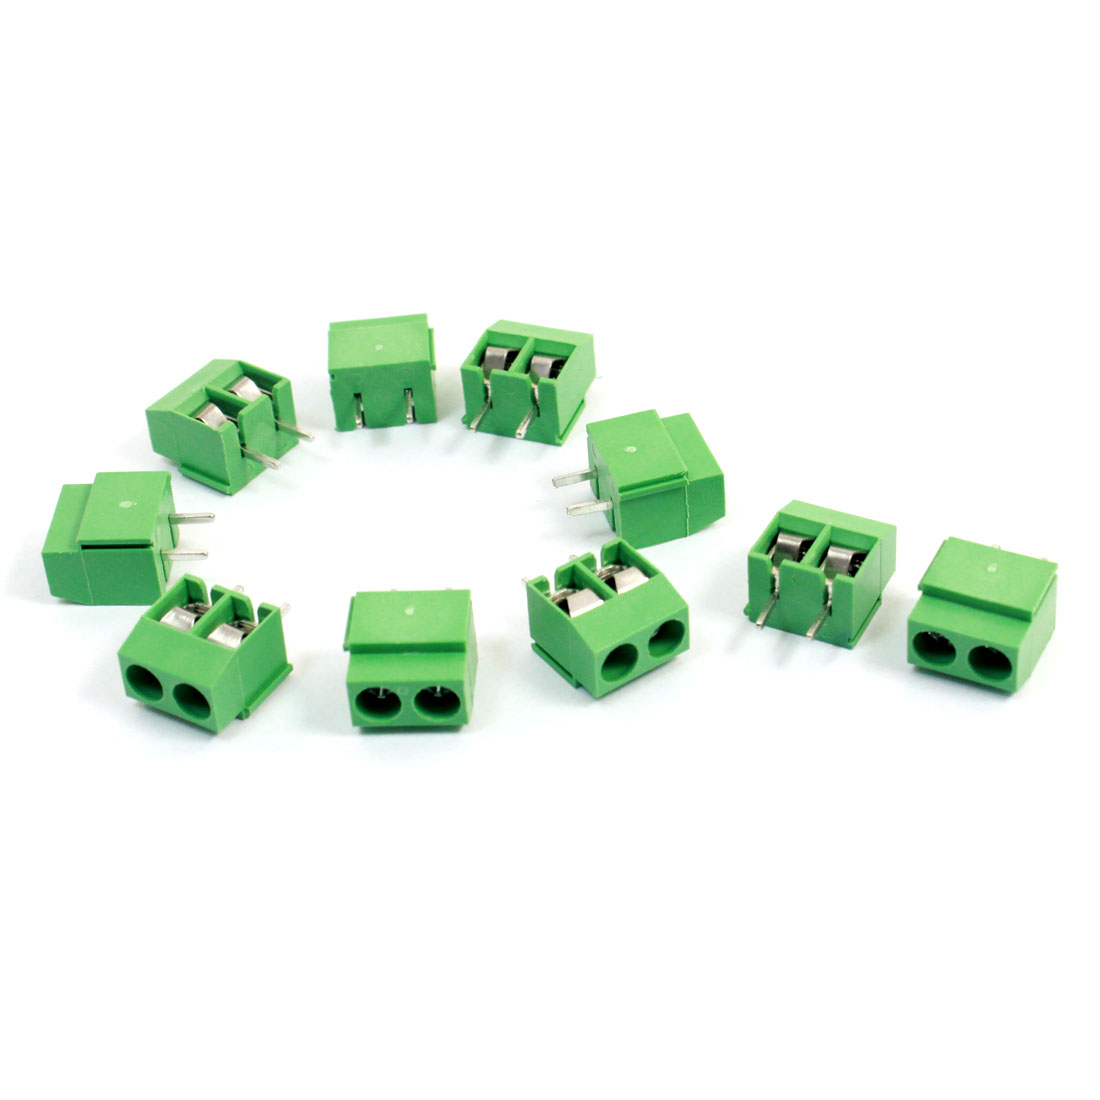 10Pcs 126-2P 2 Terminals 5mm Pitch Screw Terminal Block 300V 10A